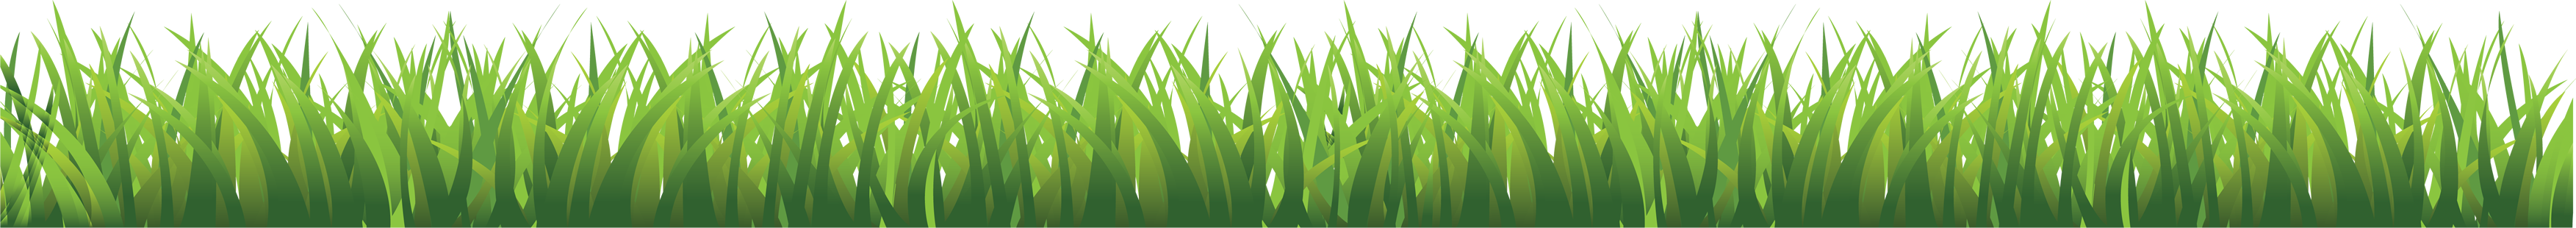 Pictures image green picture. Grass png images